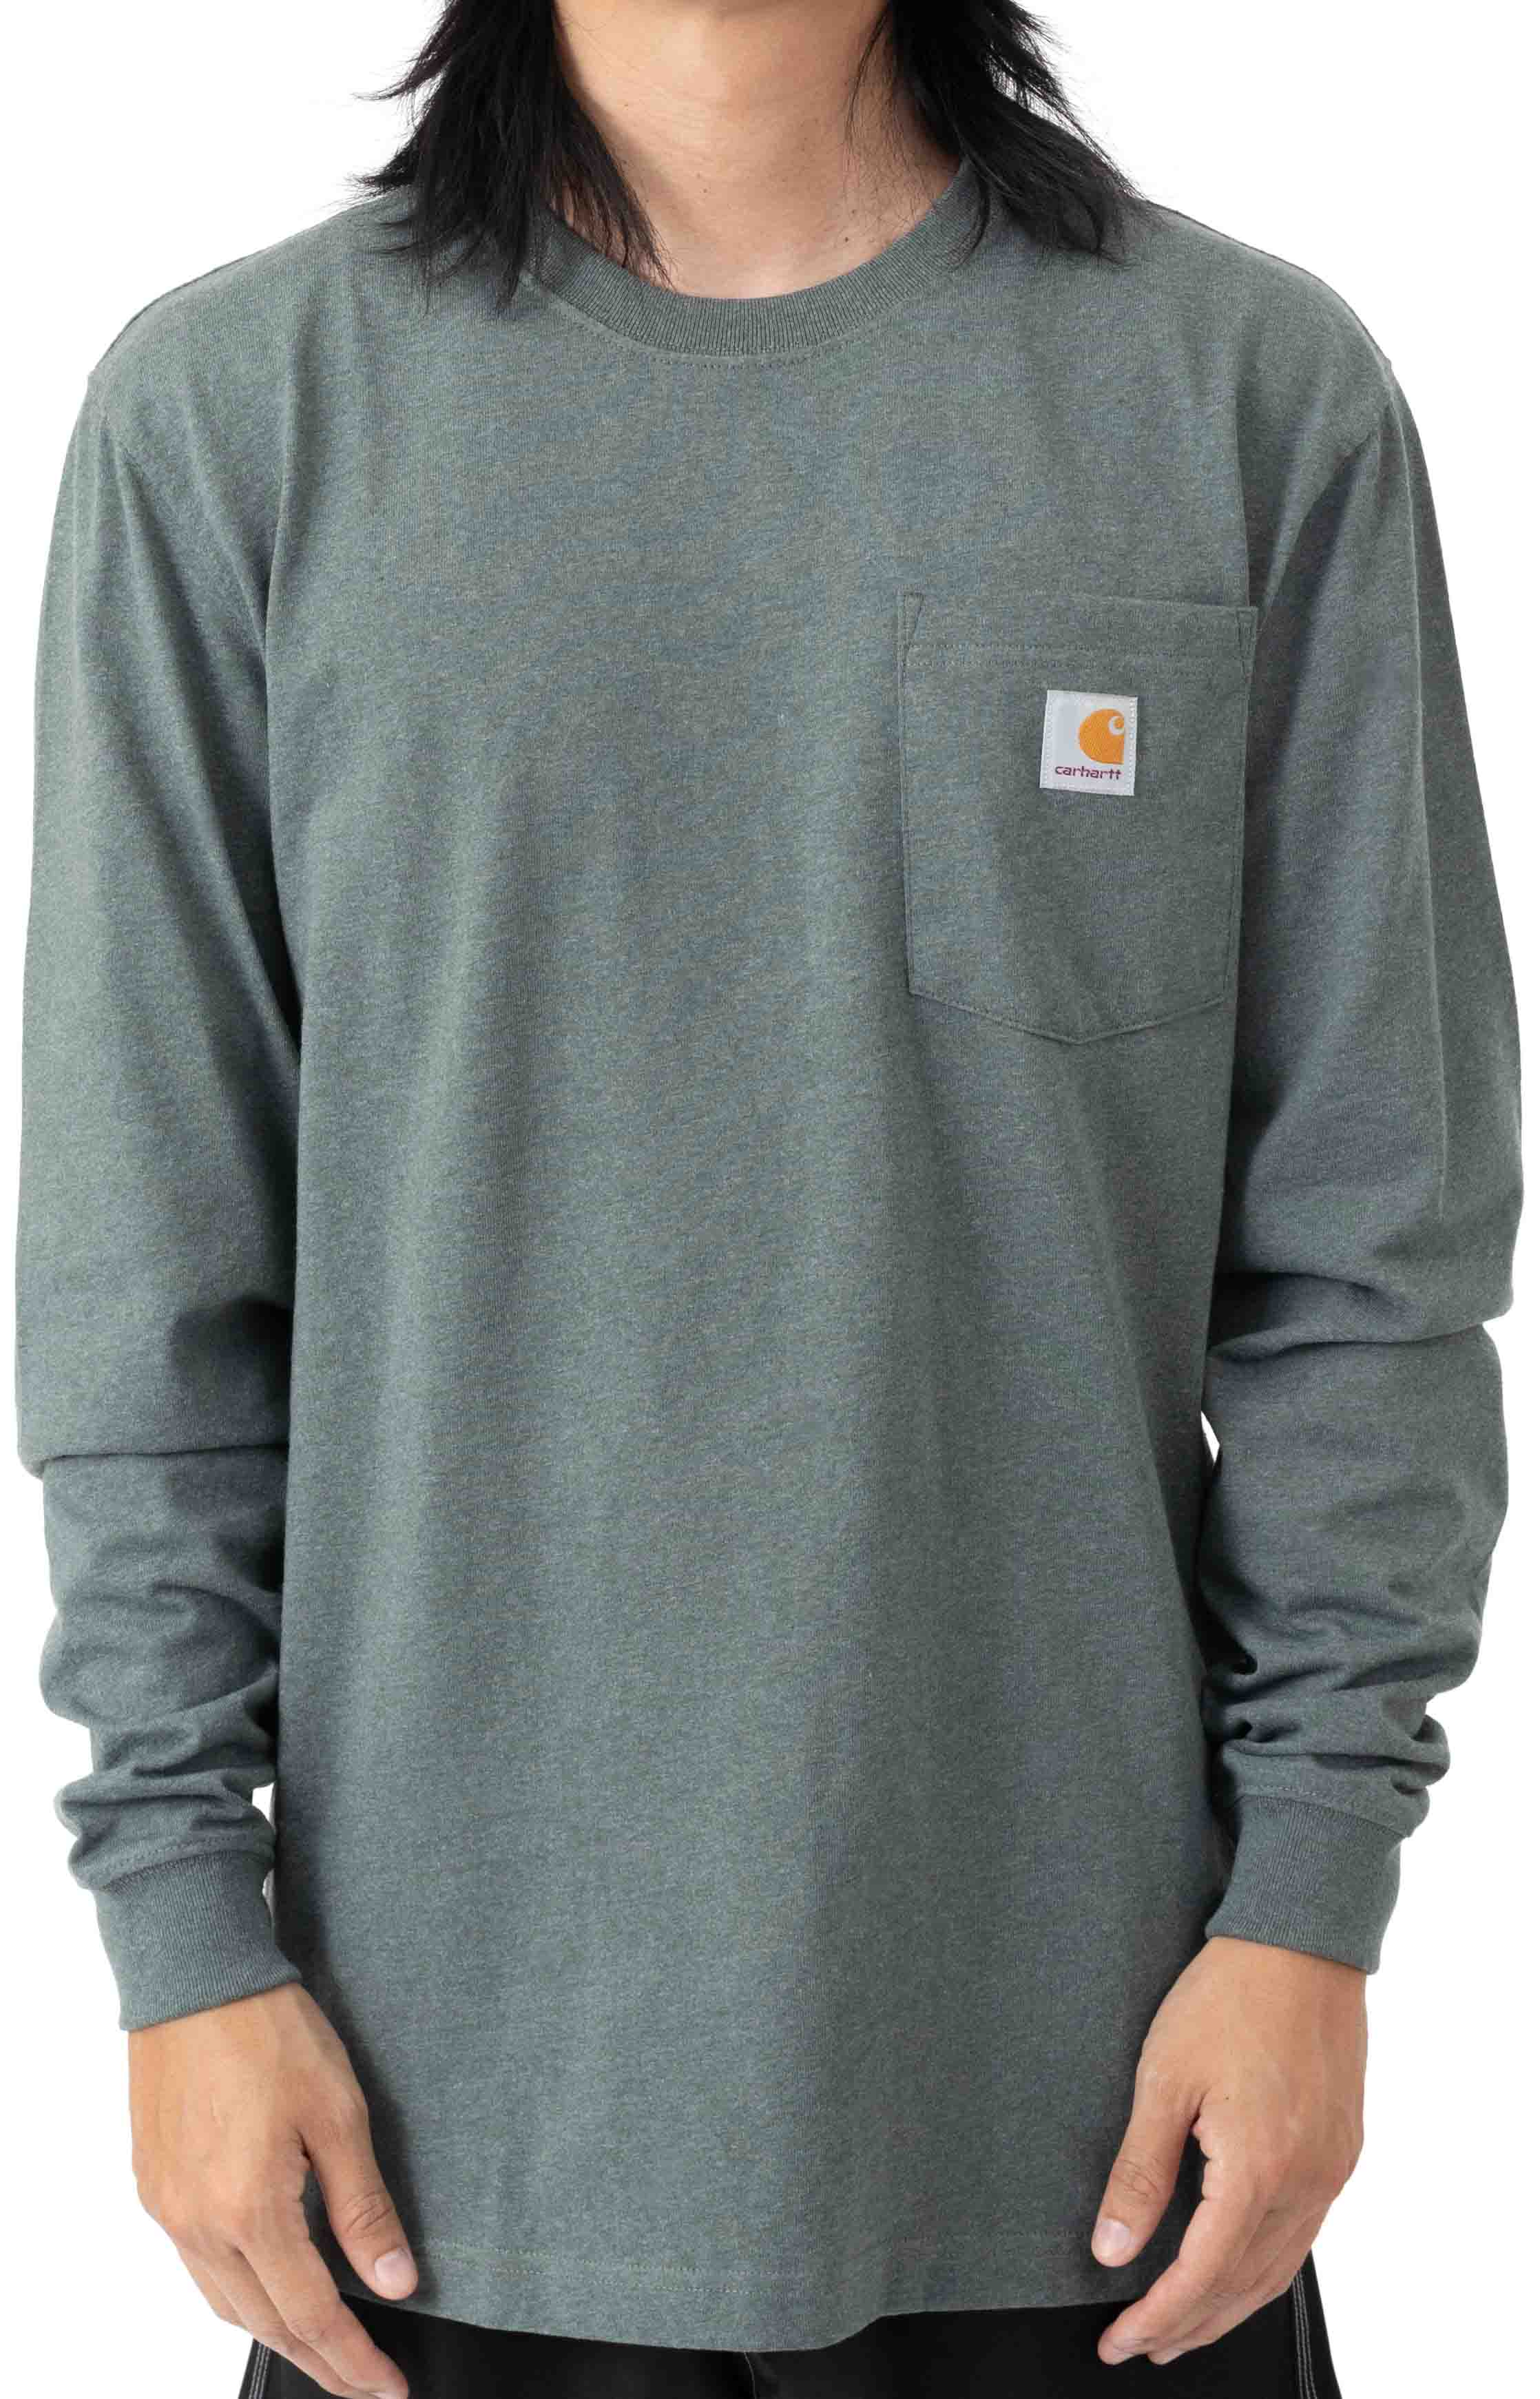 (104889) Loose Fit Heavyweight L/S Pocket Flag Graphic T-Shirt - Elm Heather  2